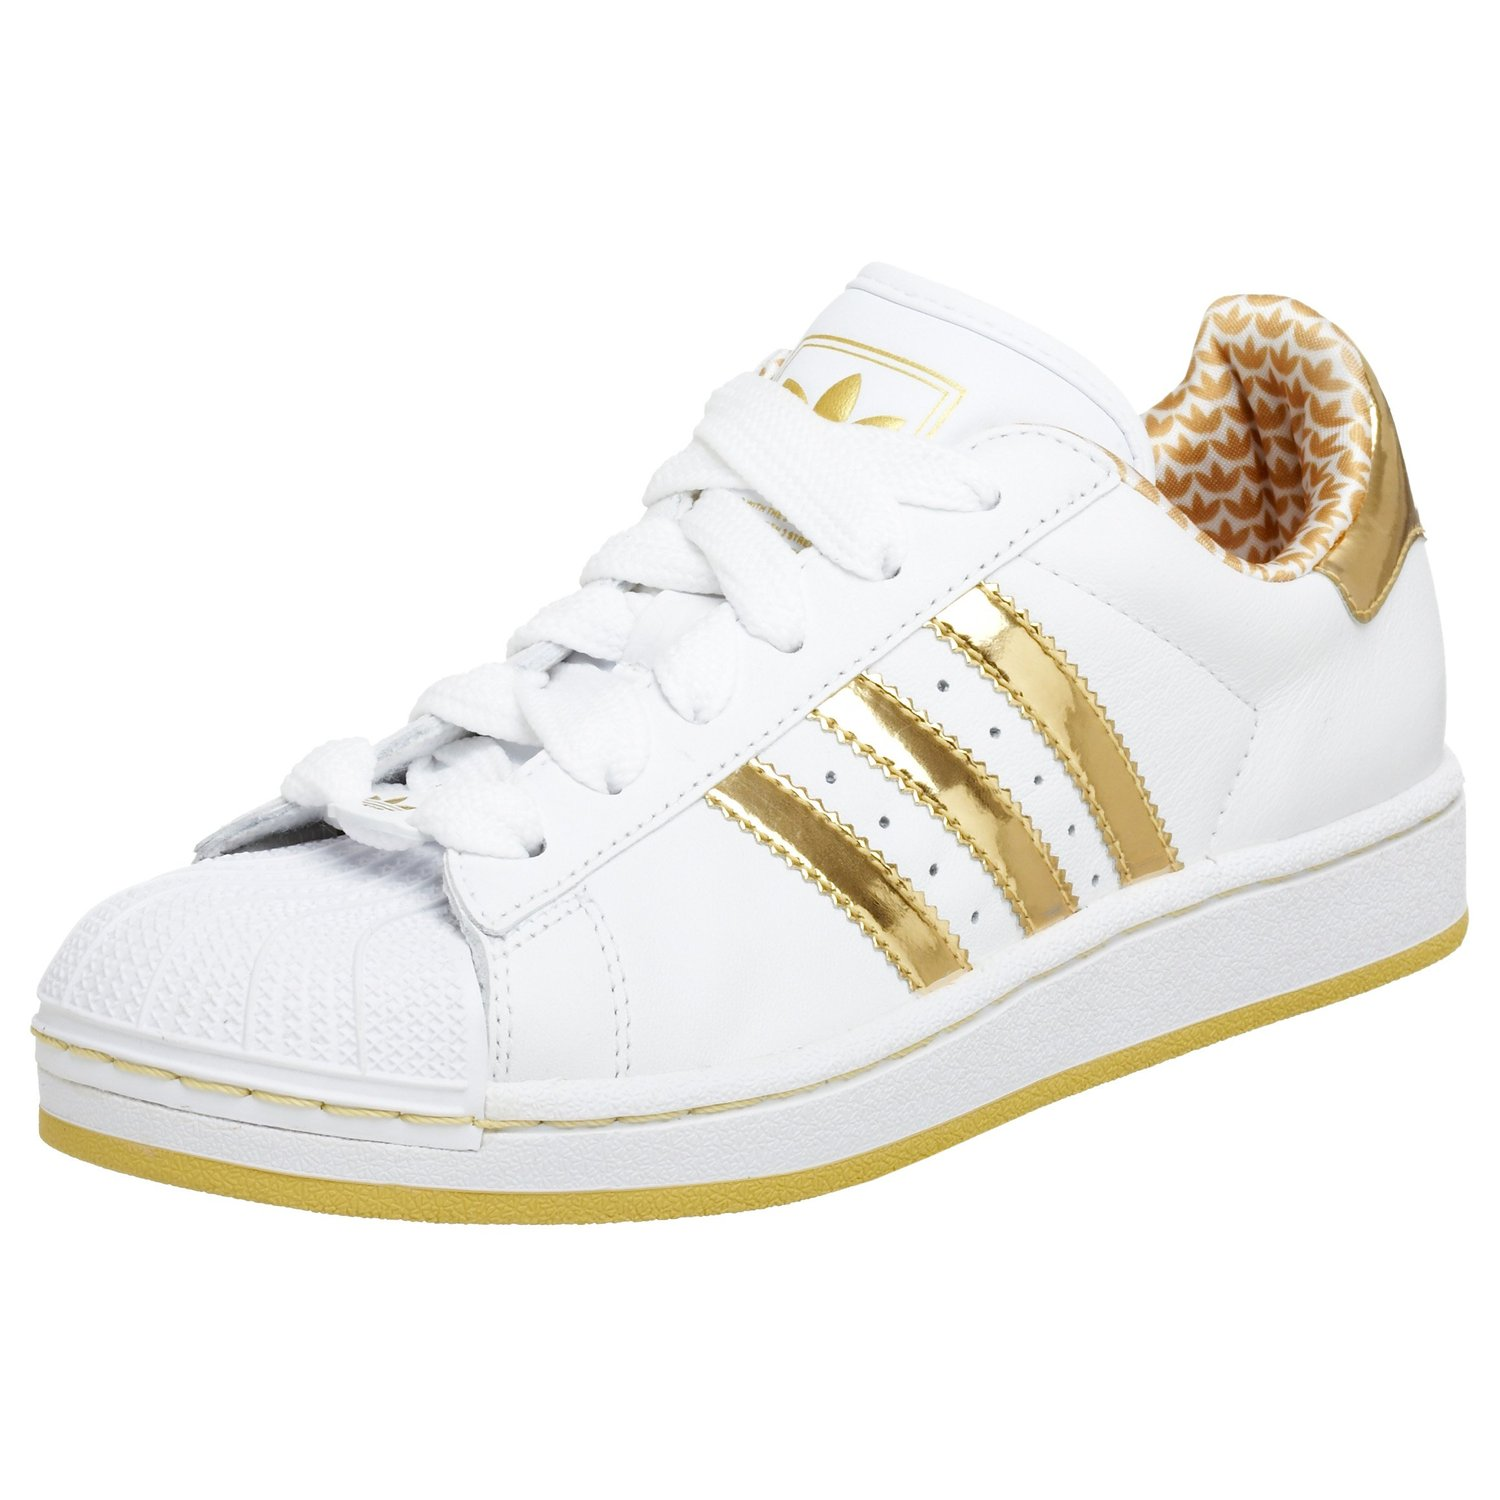 adidas trainers gold